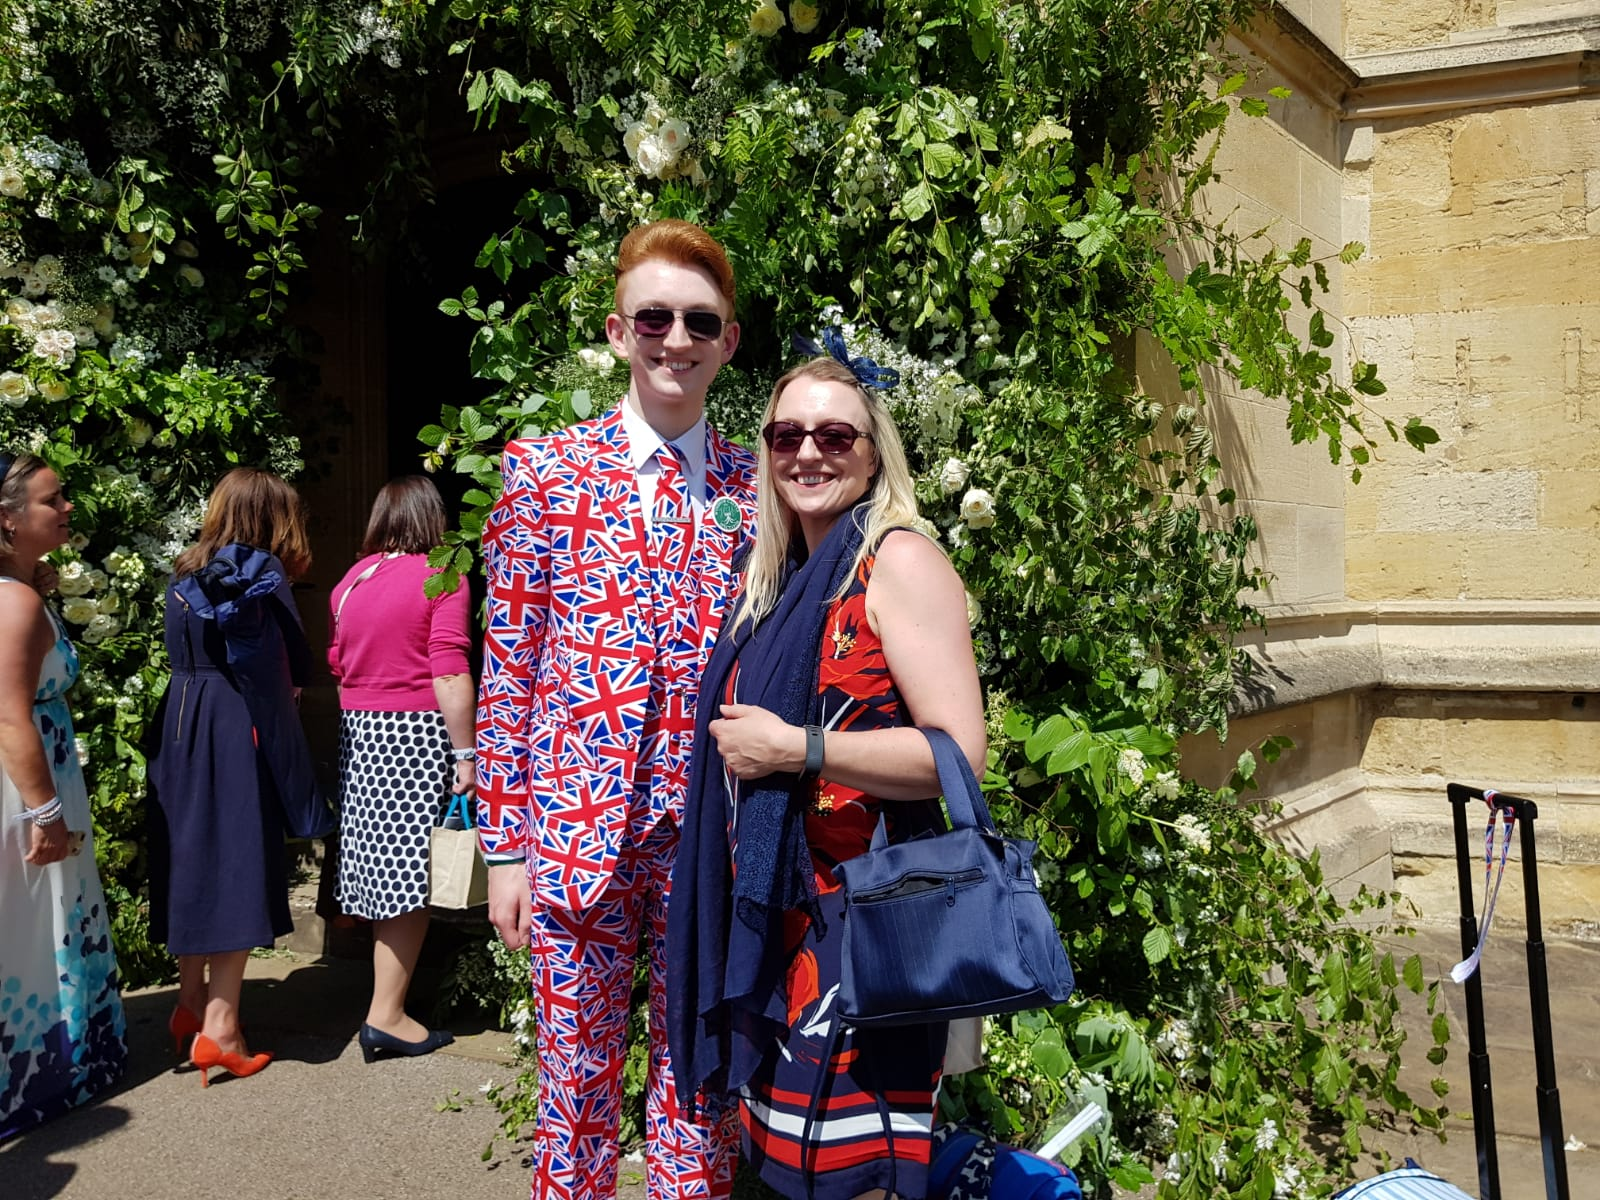 Alexander Willis and his mum Nicola were at the royal wedding